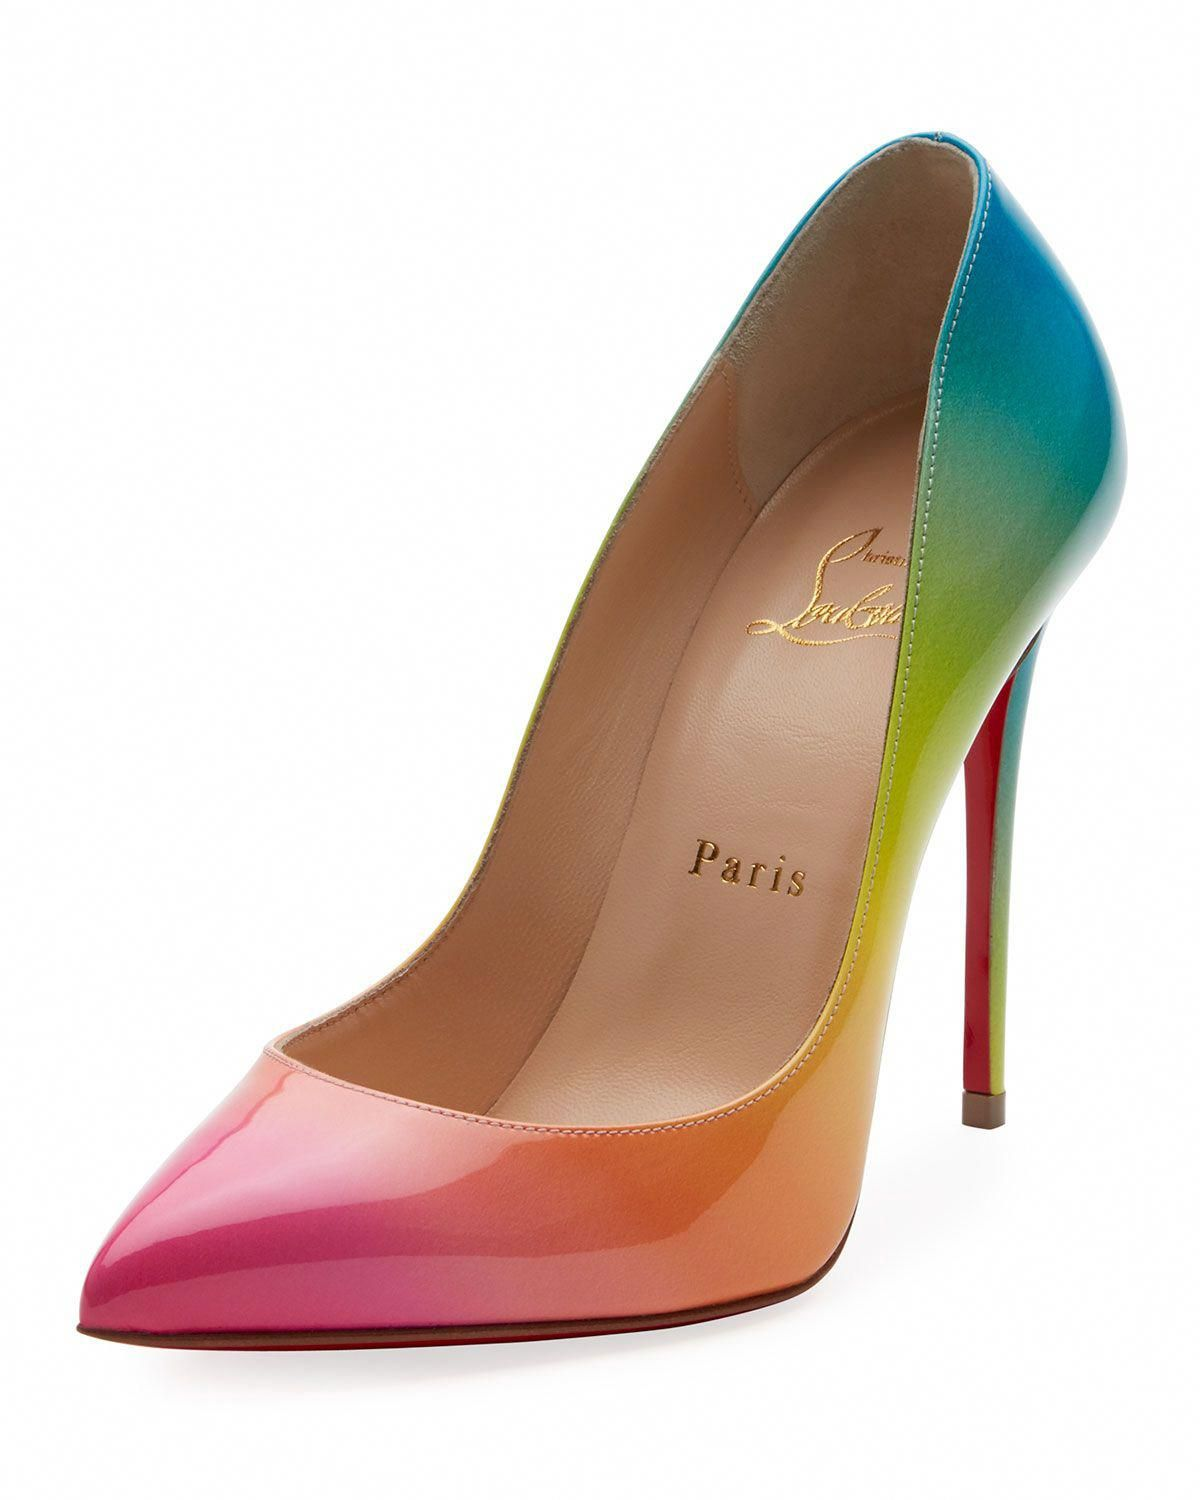 ac797275ba1 Christian Louboutin Pigalle Follies 100mm Ombre Patent Red Sole ...